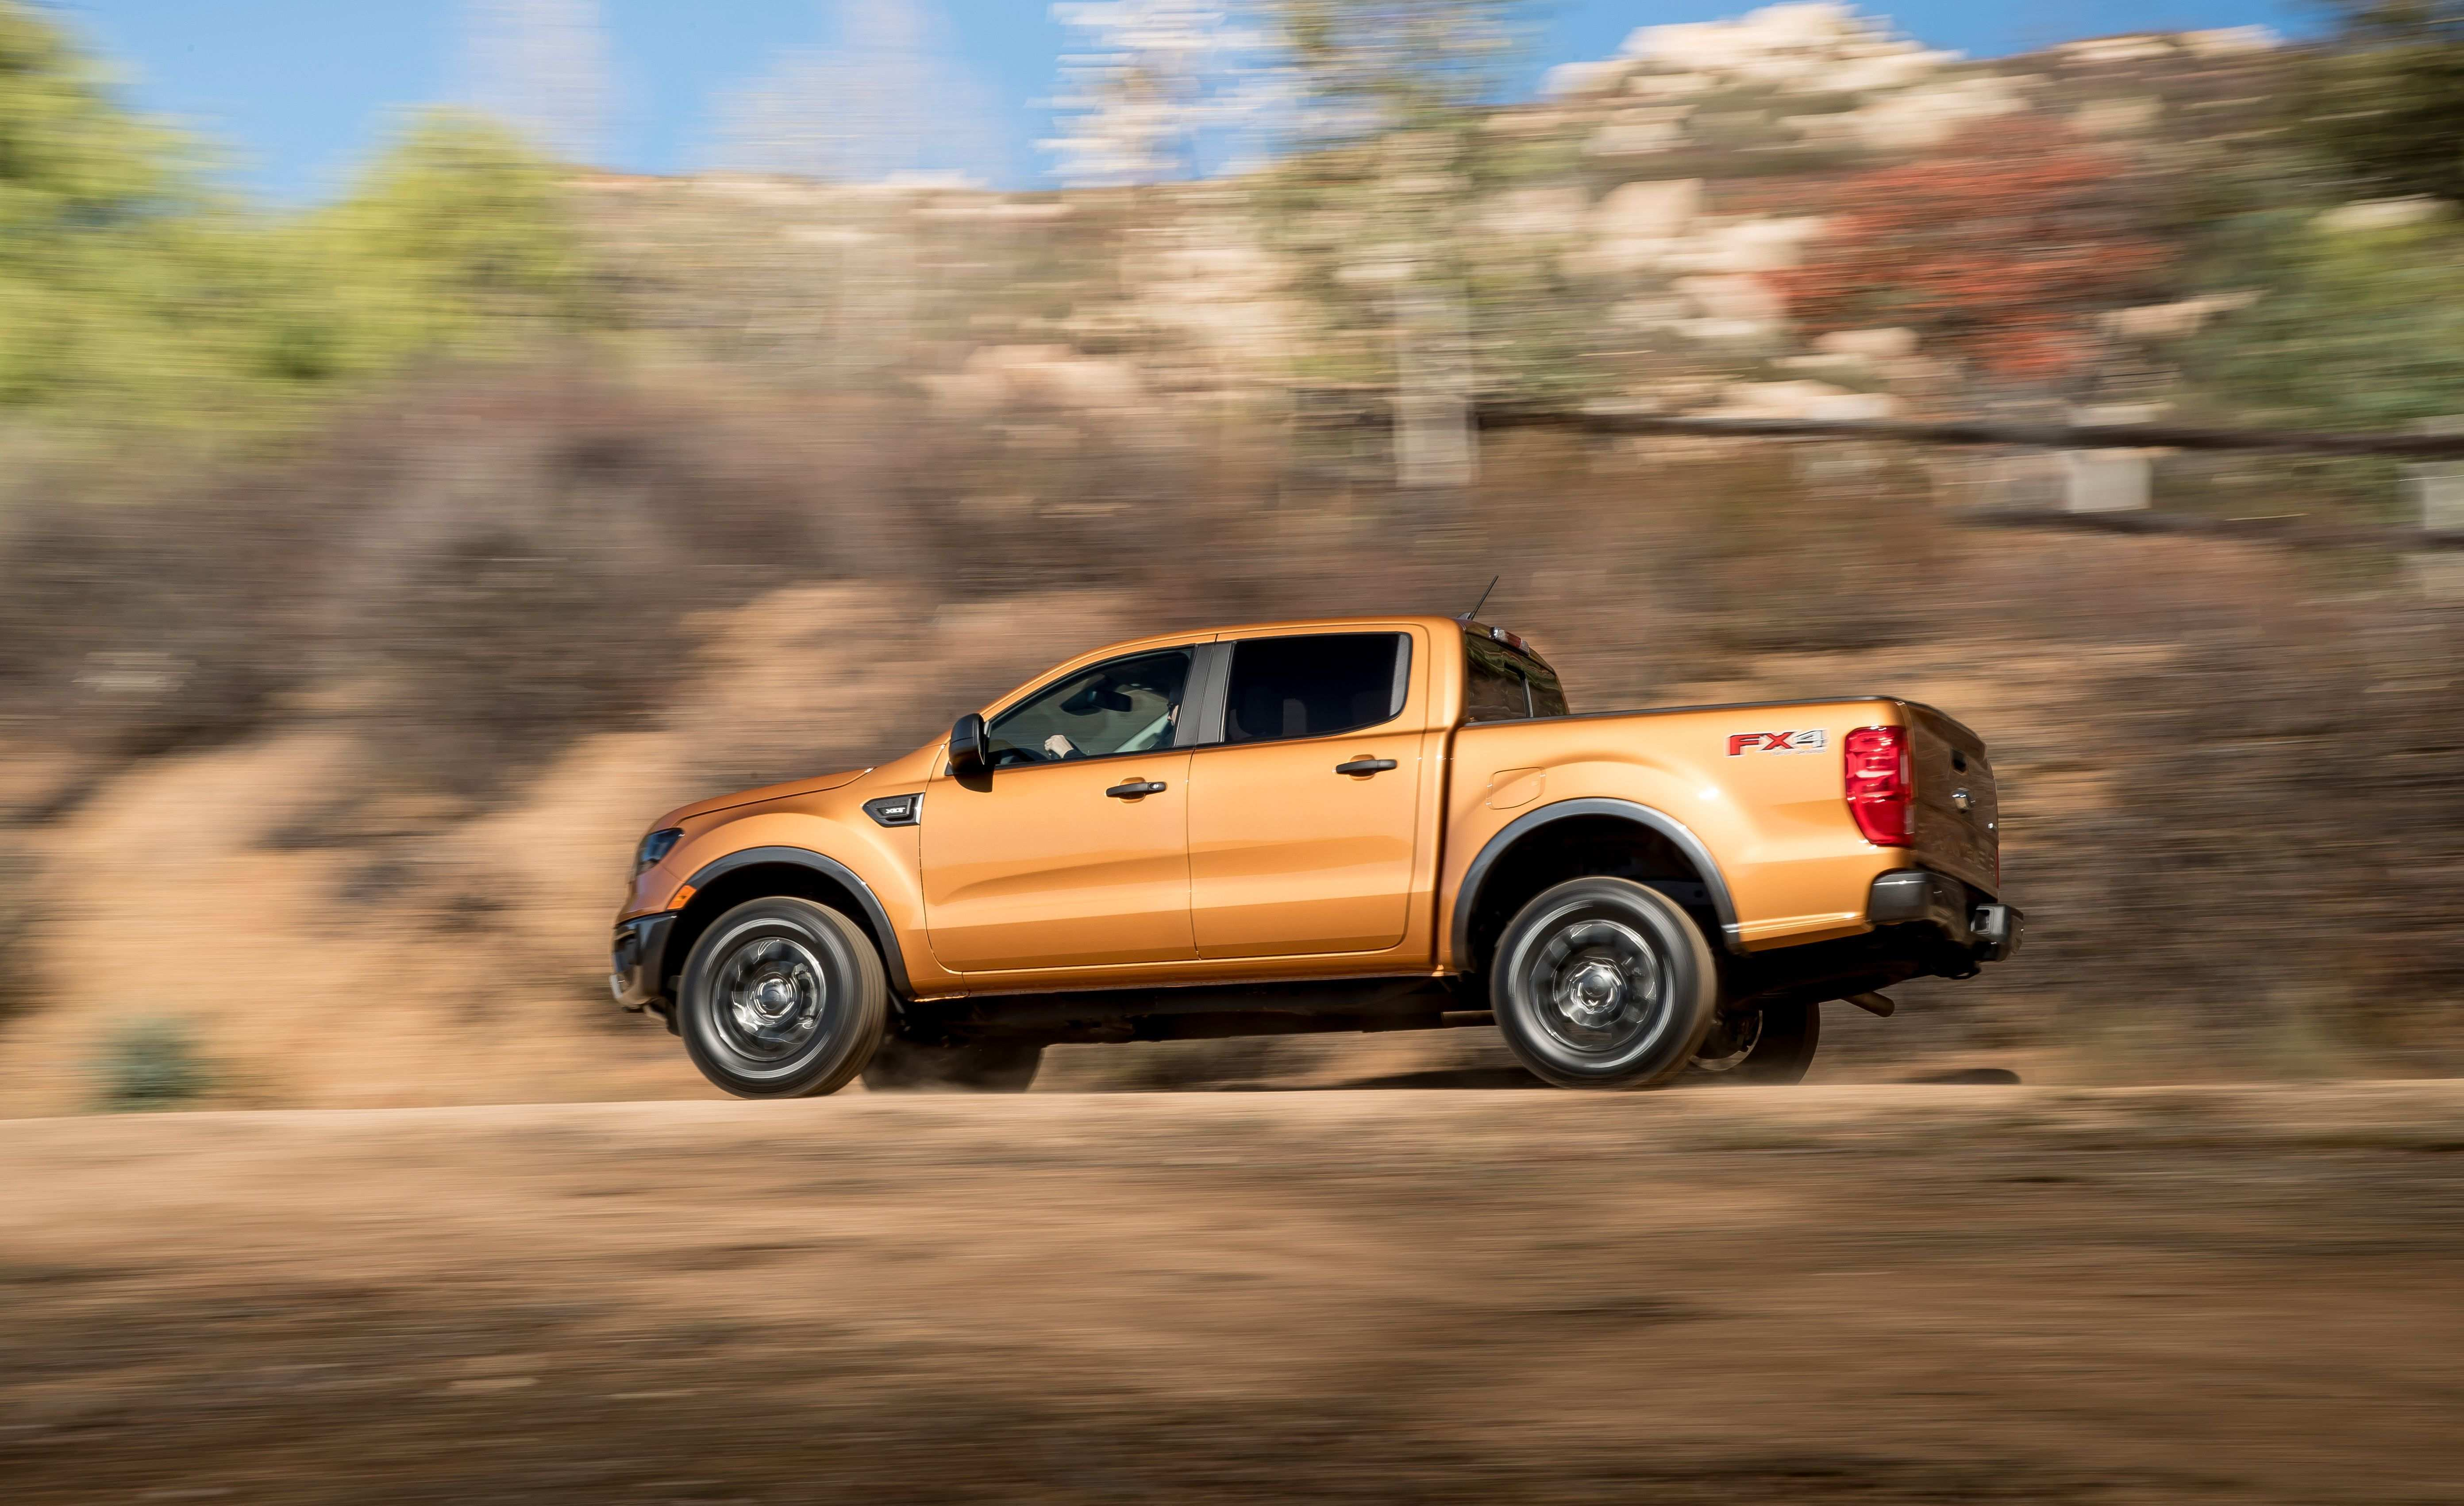 19 Gallery of The Is The 2019 Ford Ranger Out Yet Review And Price New Review with The Is The 2019 Ford Ranger Out Yet Review And Price